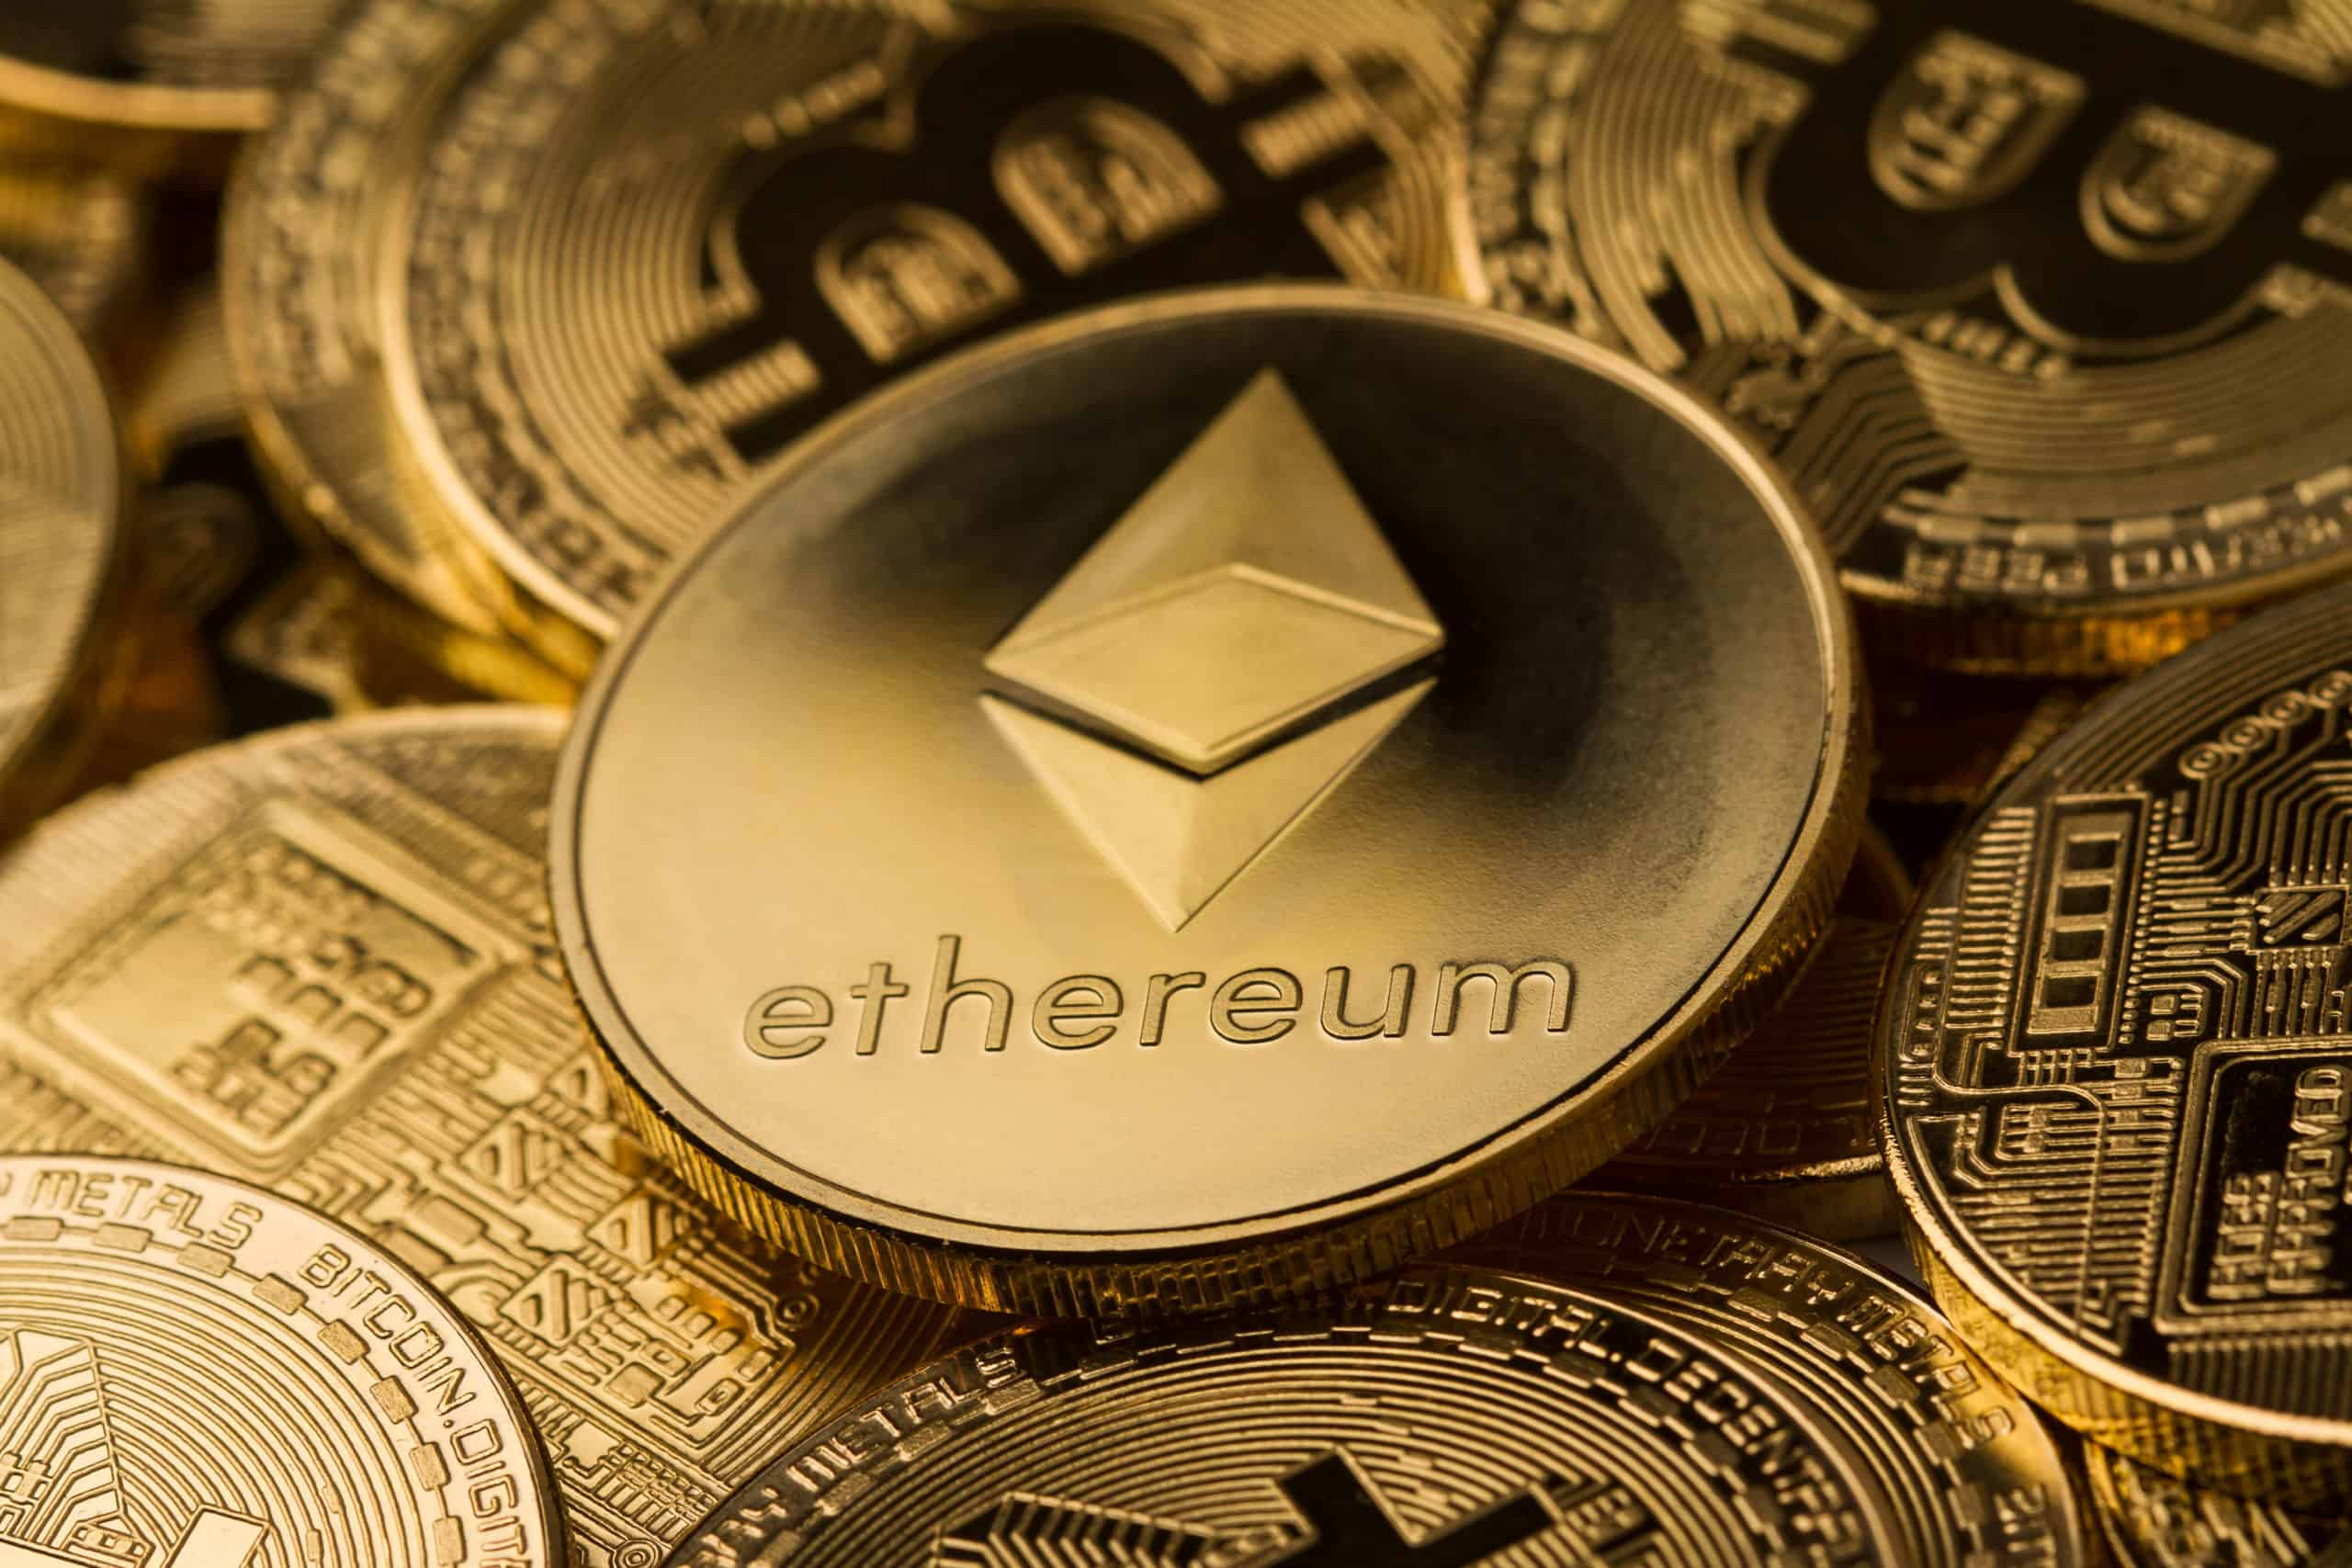 Maharashtra, First state to integrate Ethereum in Education System